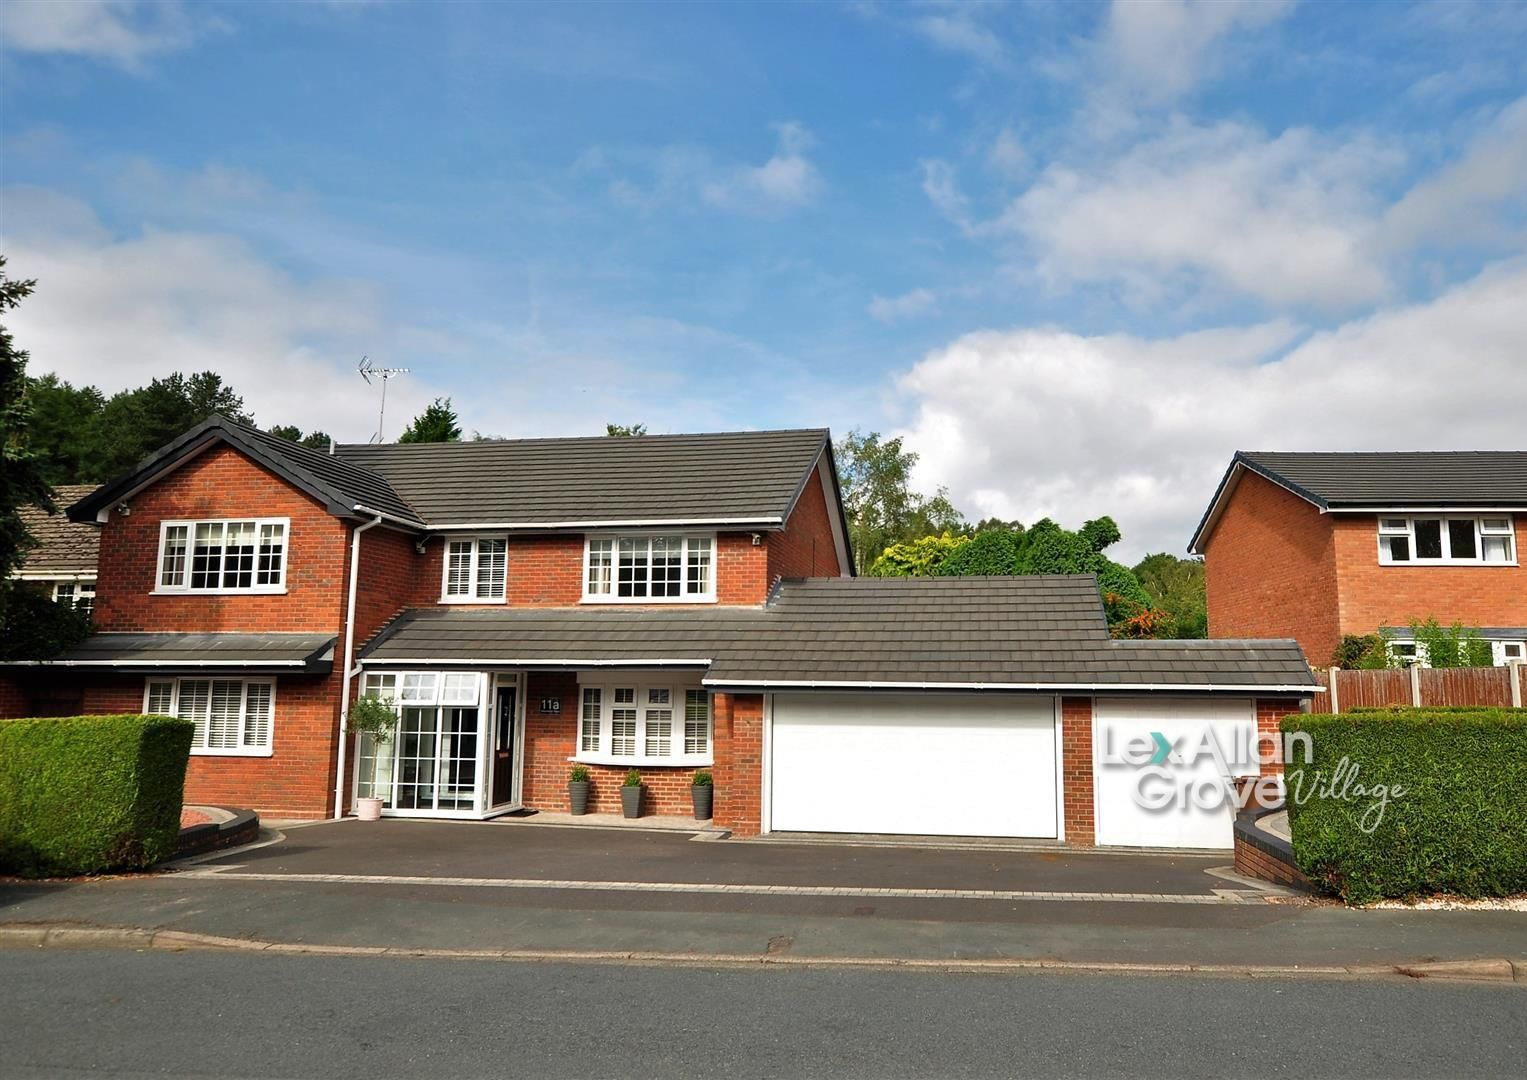 4 bed house for sale in Blakedown, DY10